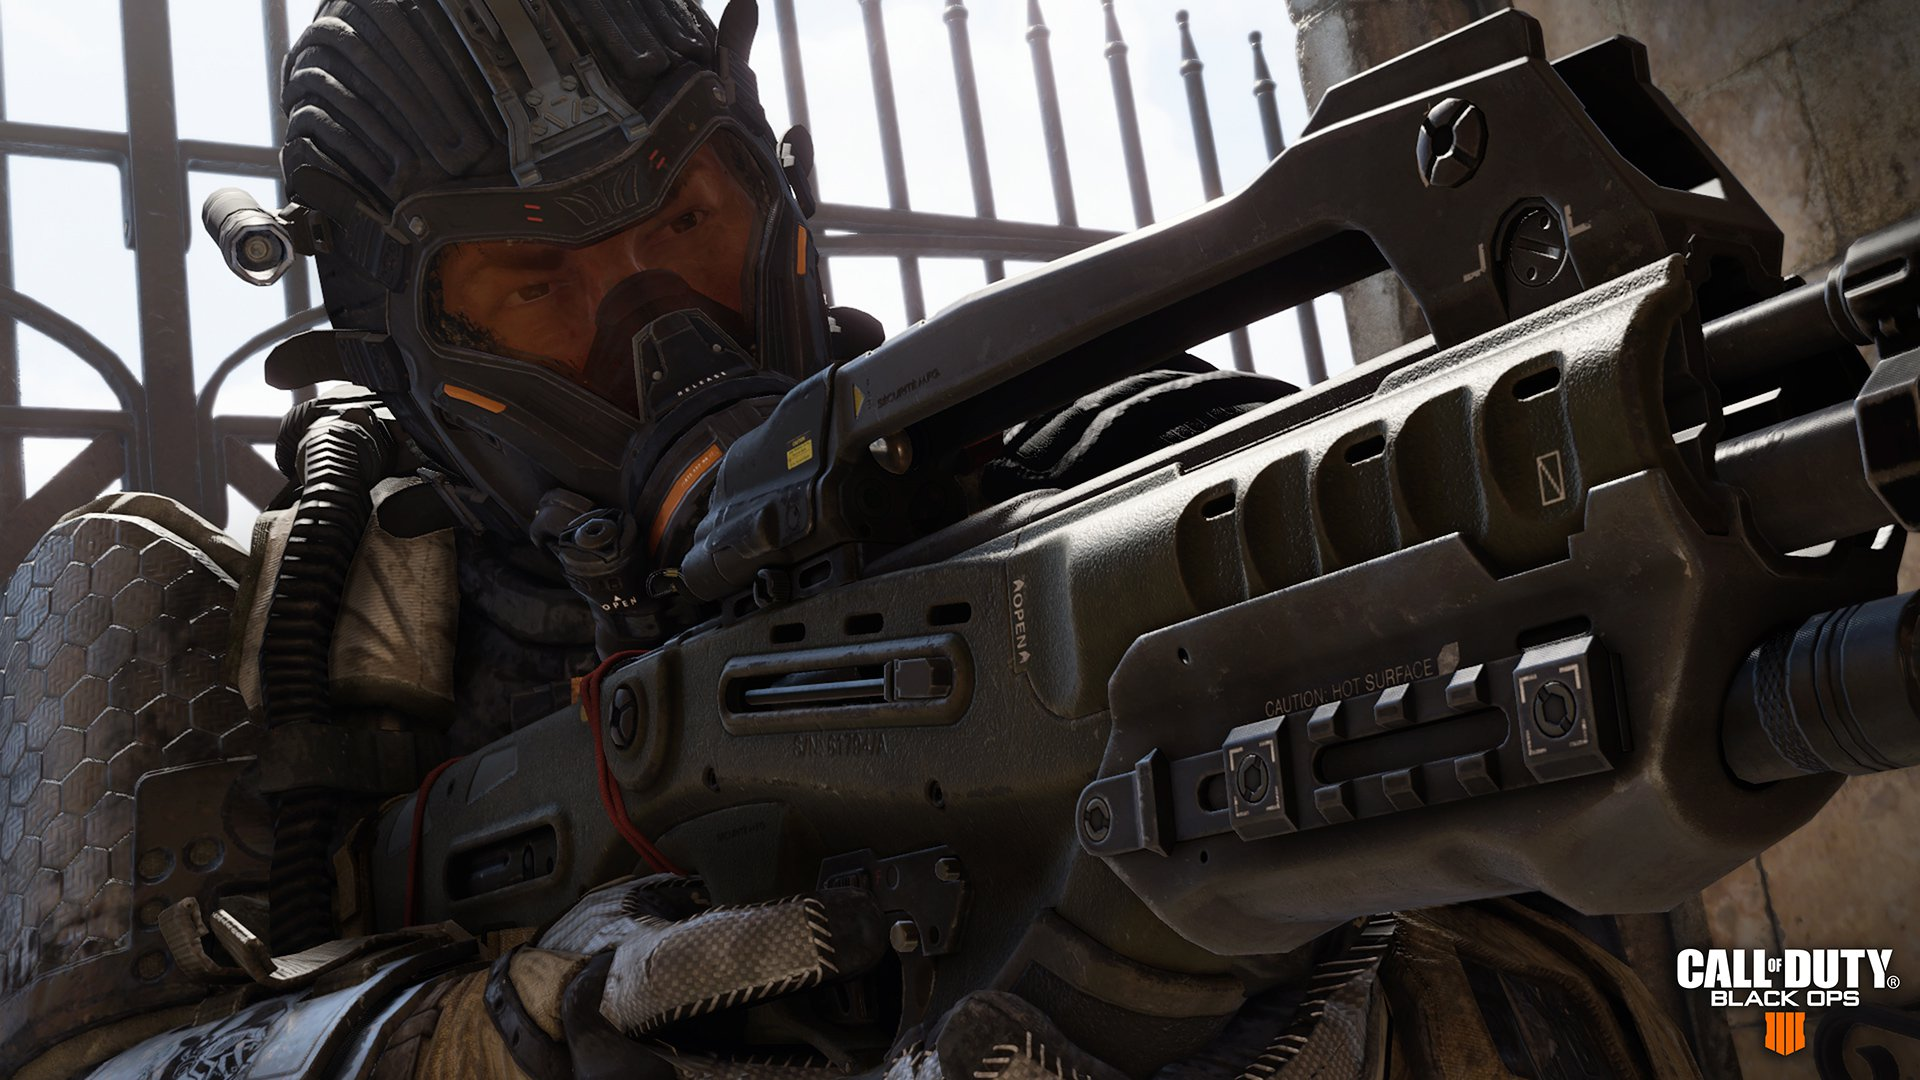 Black Ops 4 producer drops vague hints about a campaign mode screenshot